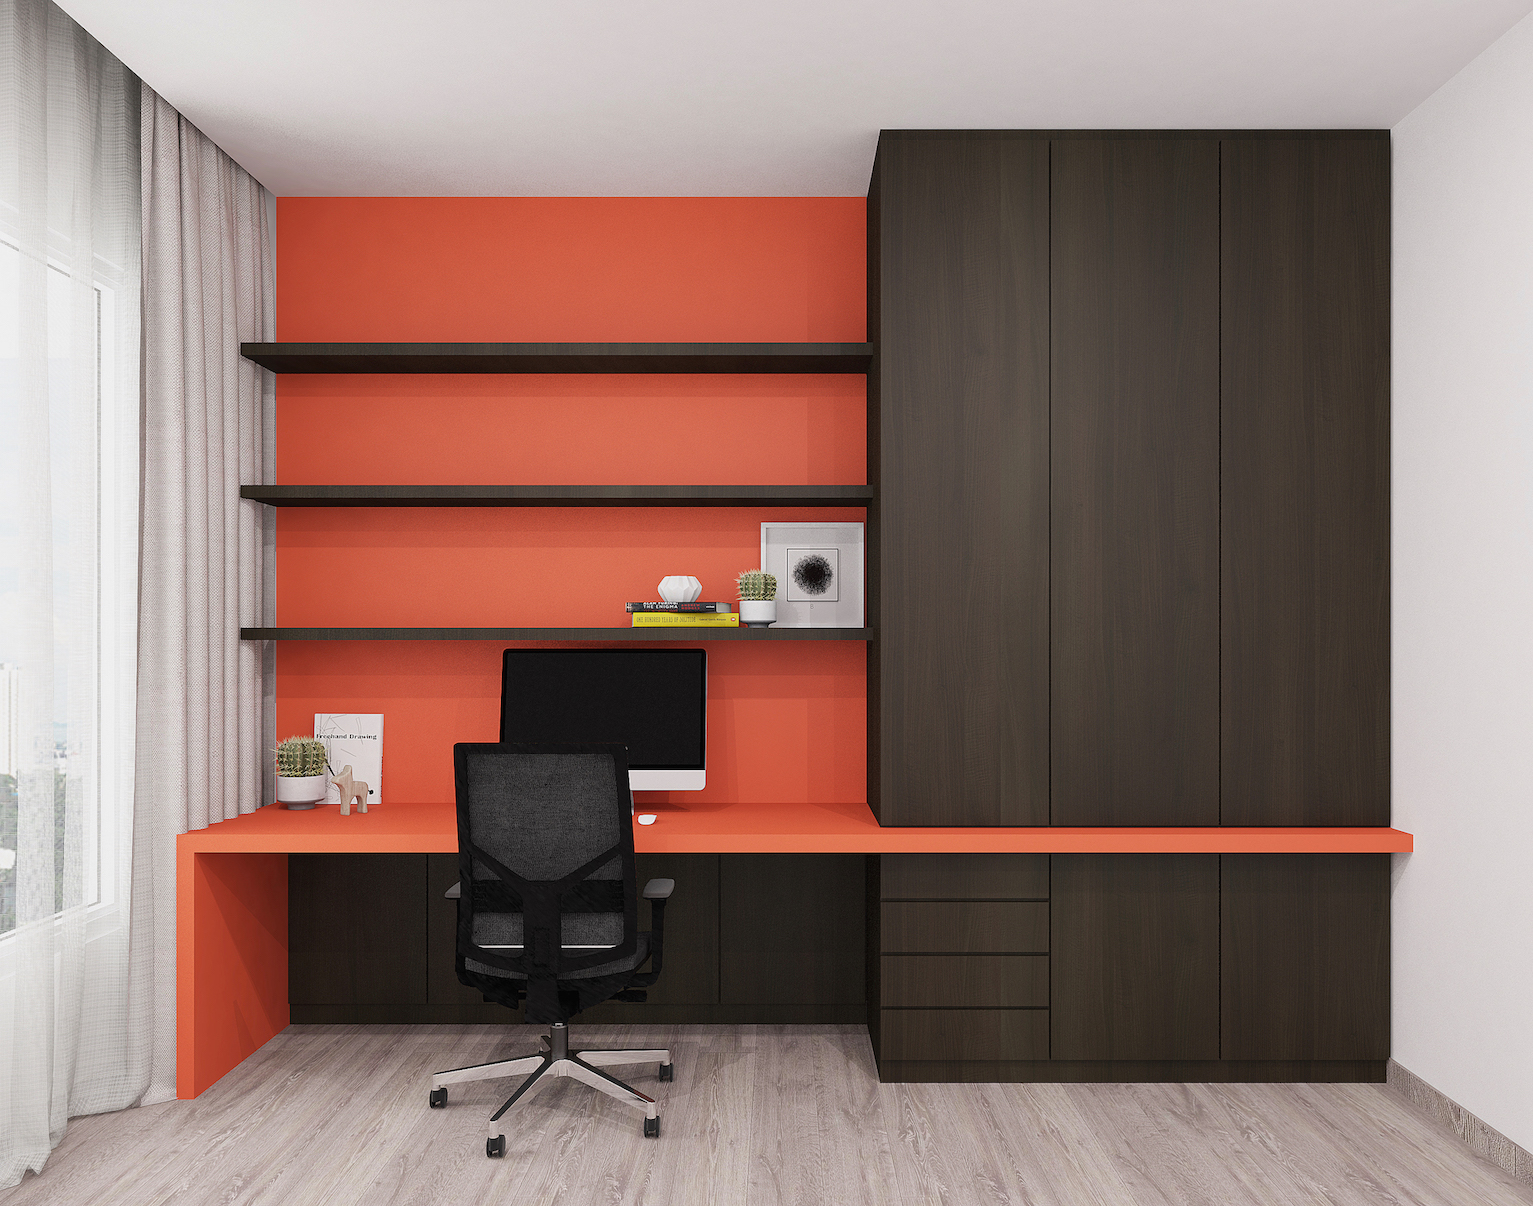 Laminates Featured: PG1931T, RR2290T (orange)